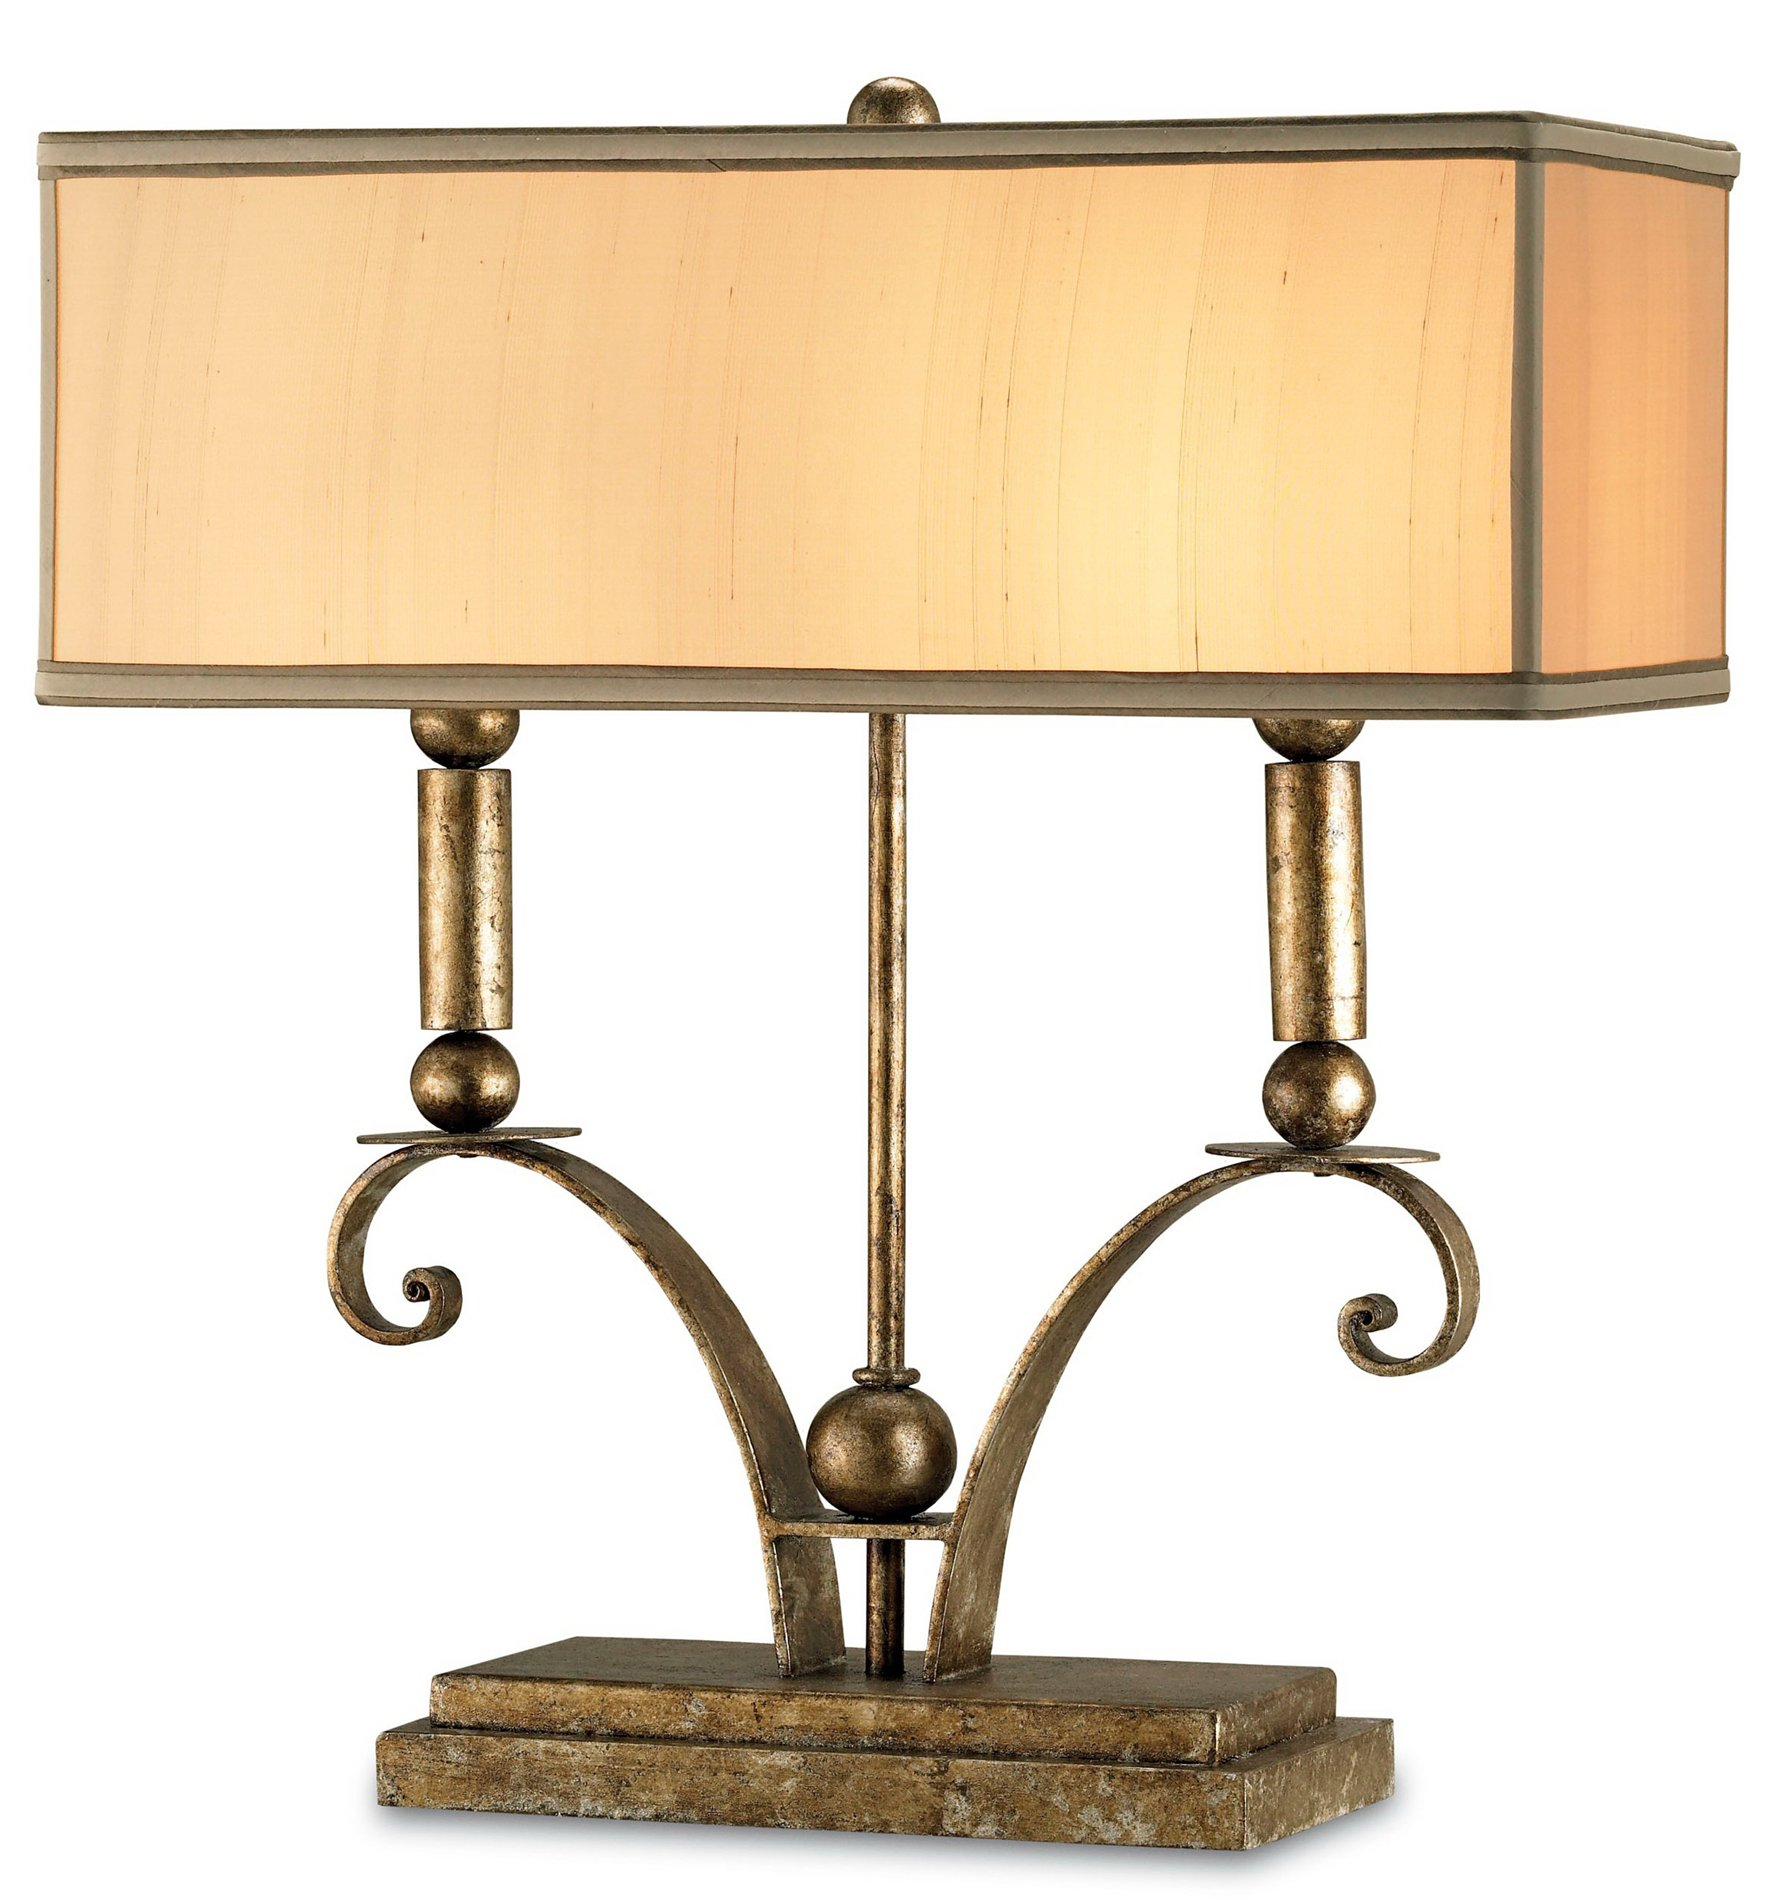 Currey and Company 6326 Windfall Traditional Desk Lamp CNC-6326